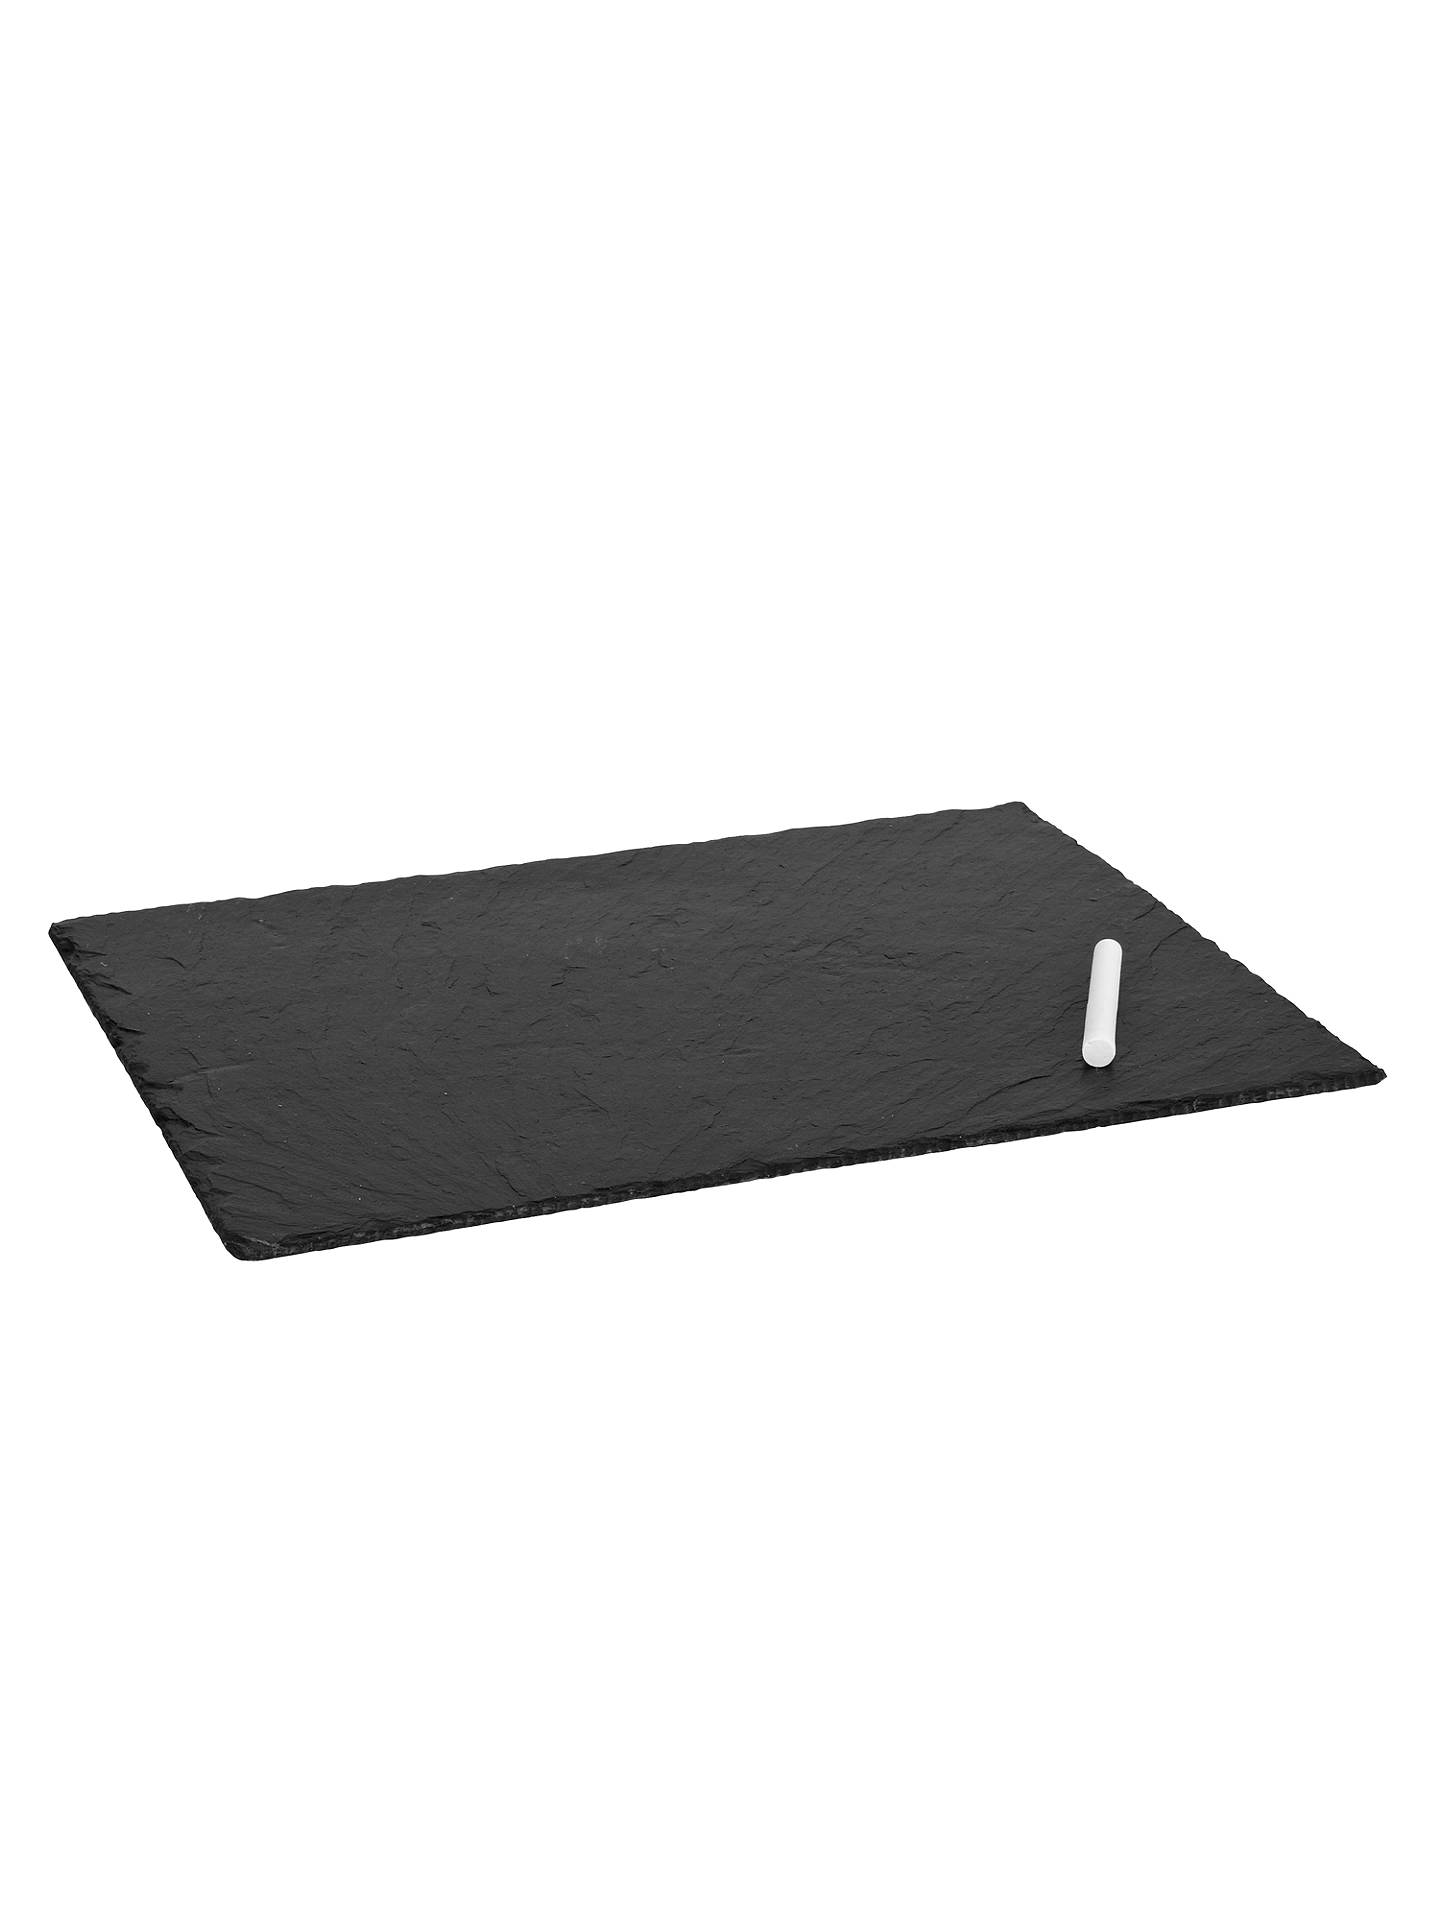 BuyJust Slate Cheese Board Online at johnlewis.com